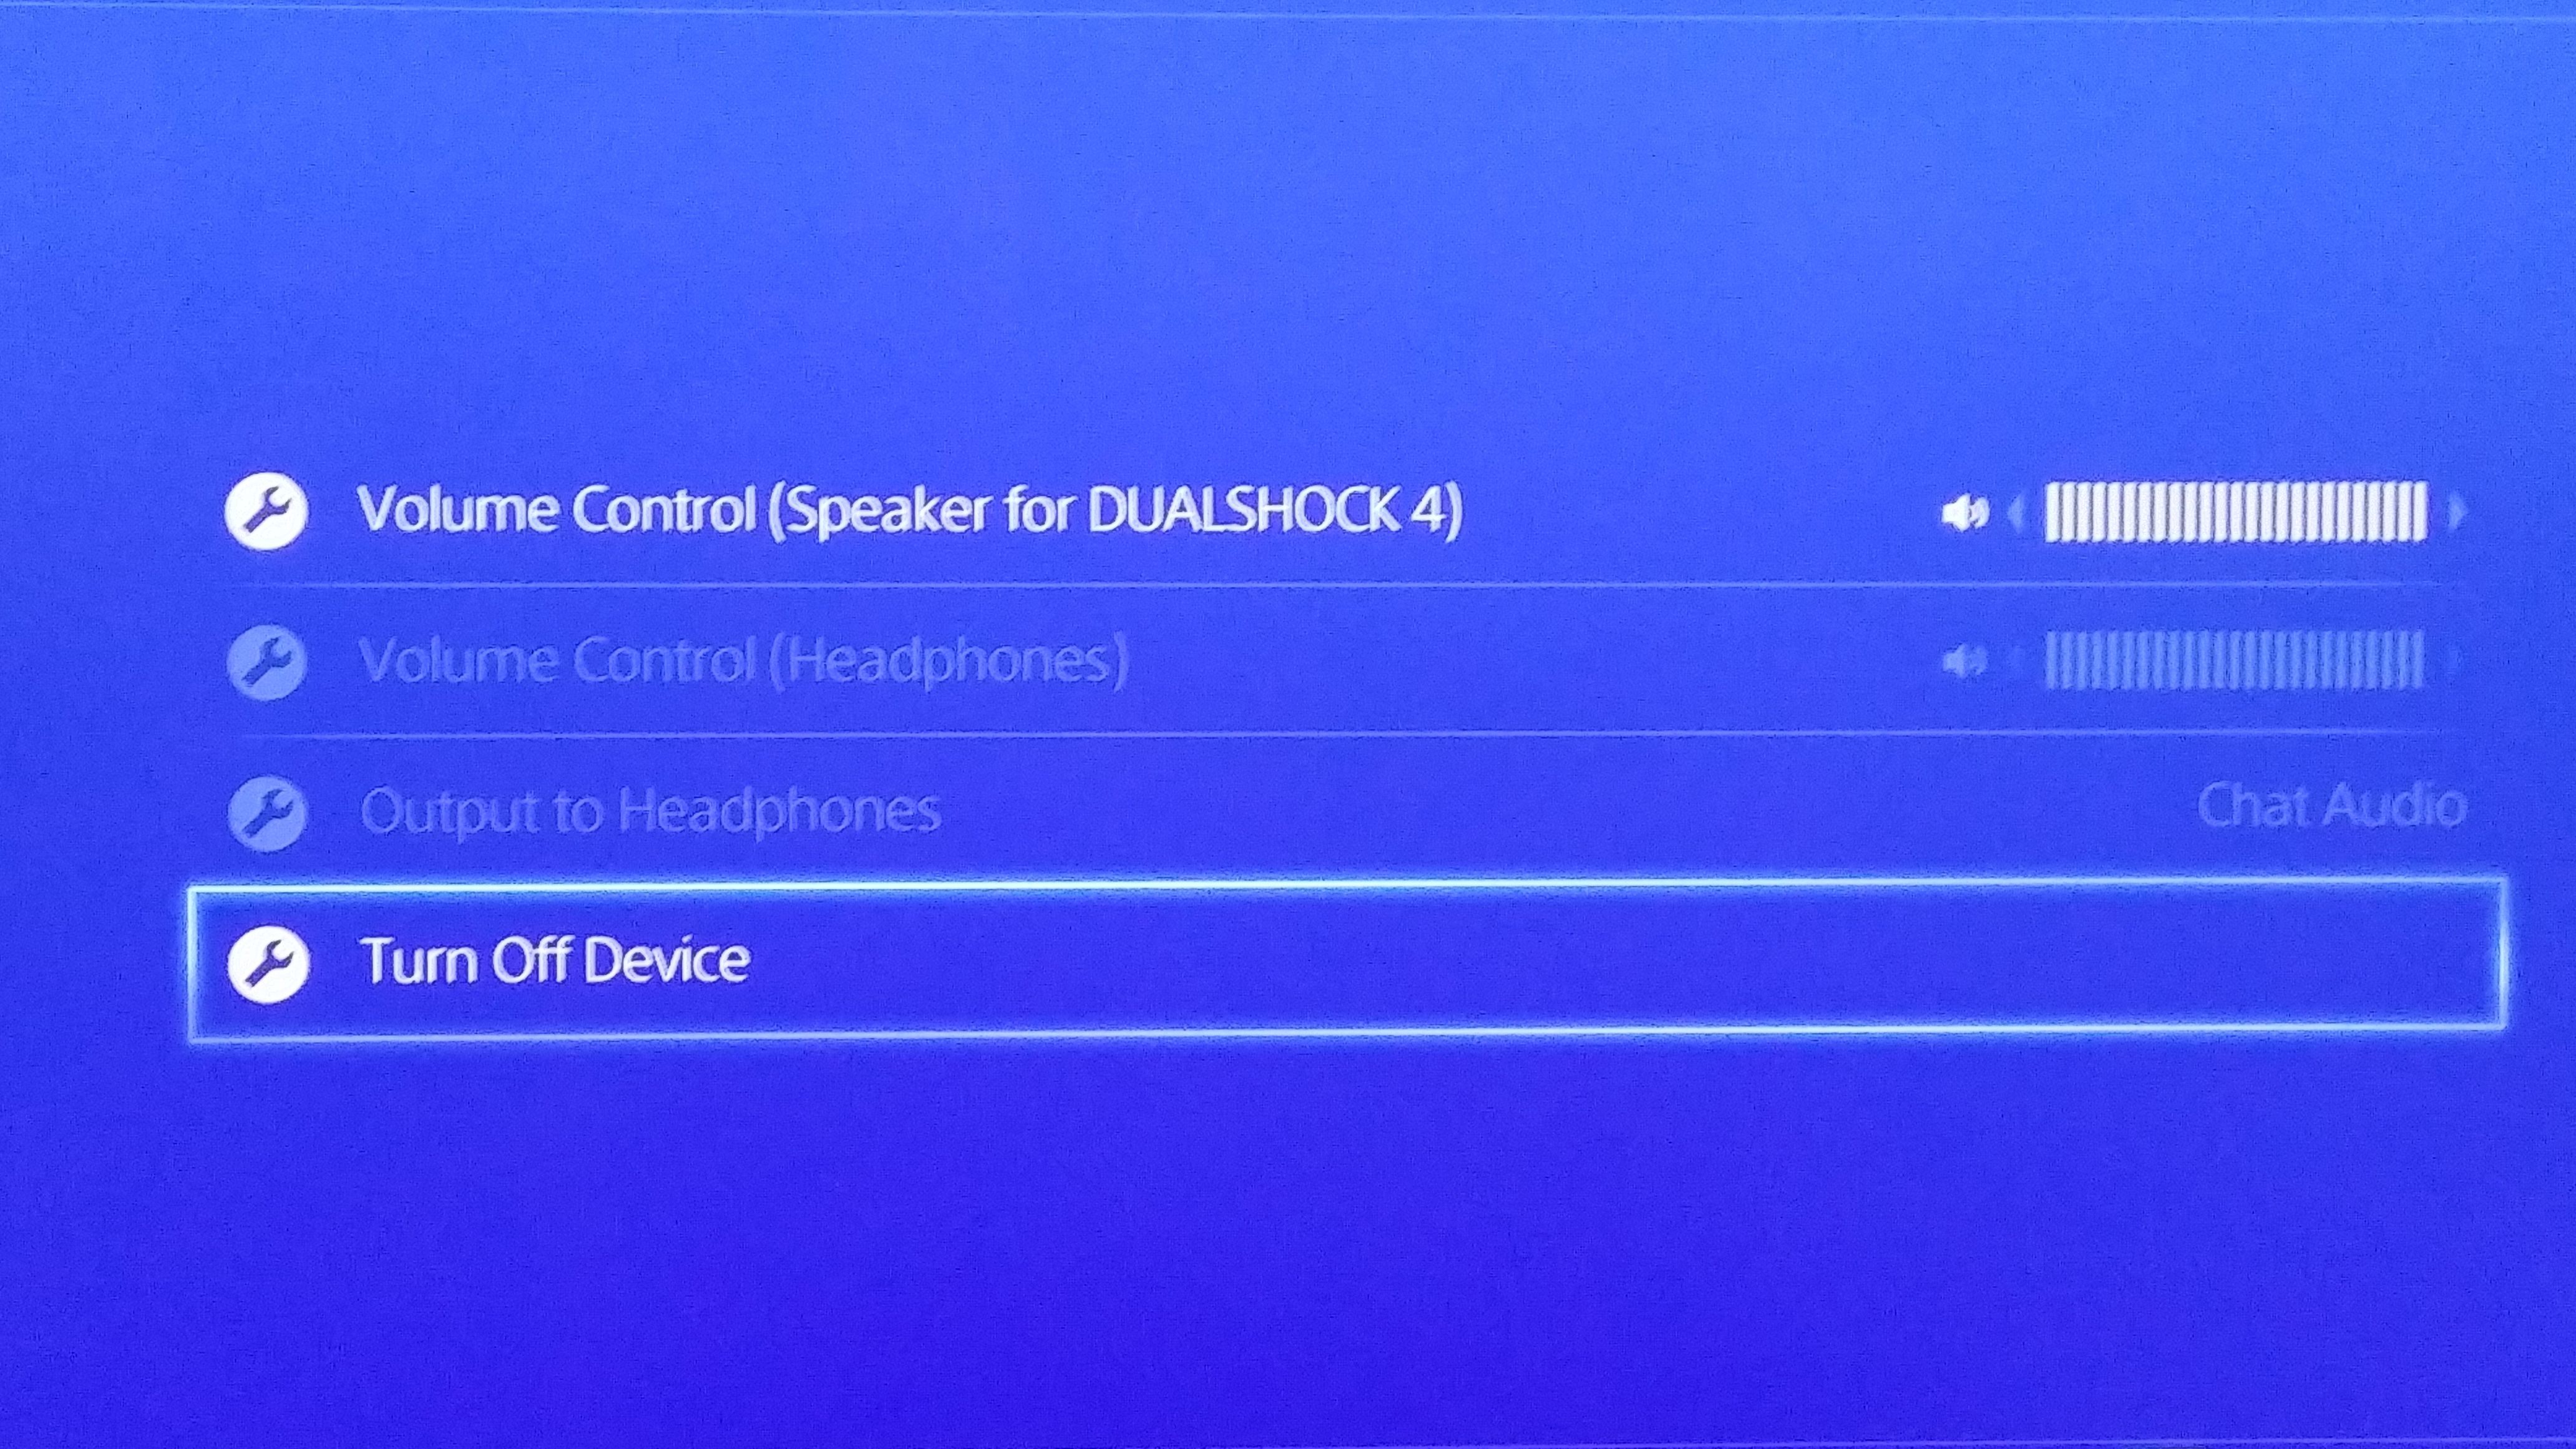 PS4 Turn off Device - PlayStation LifeStyle